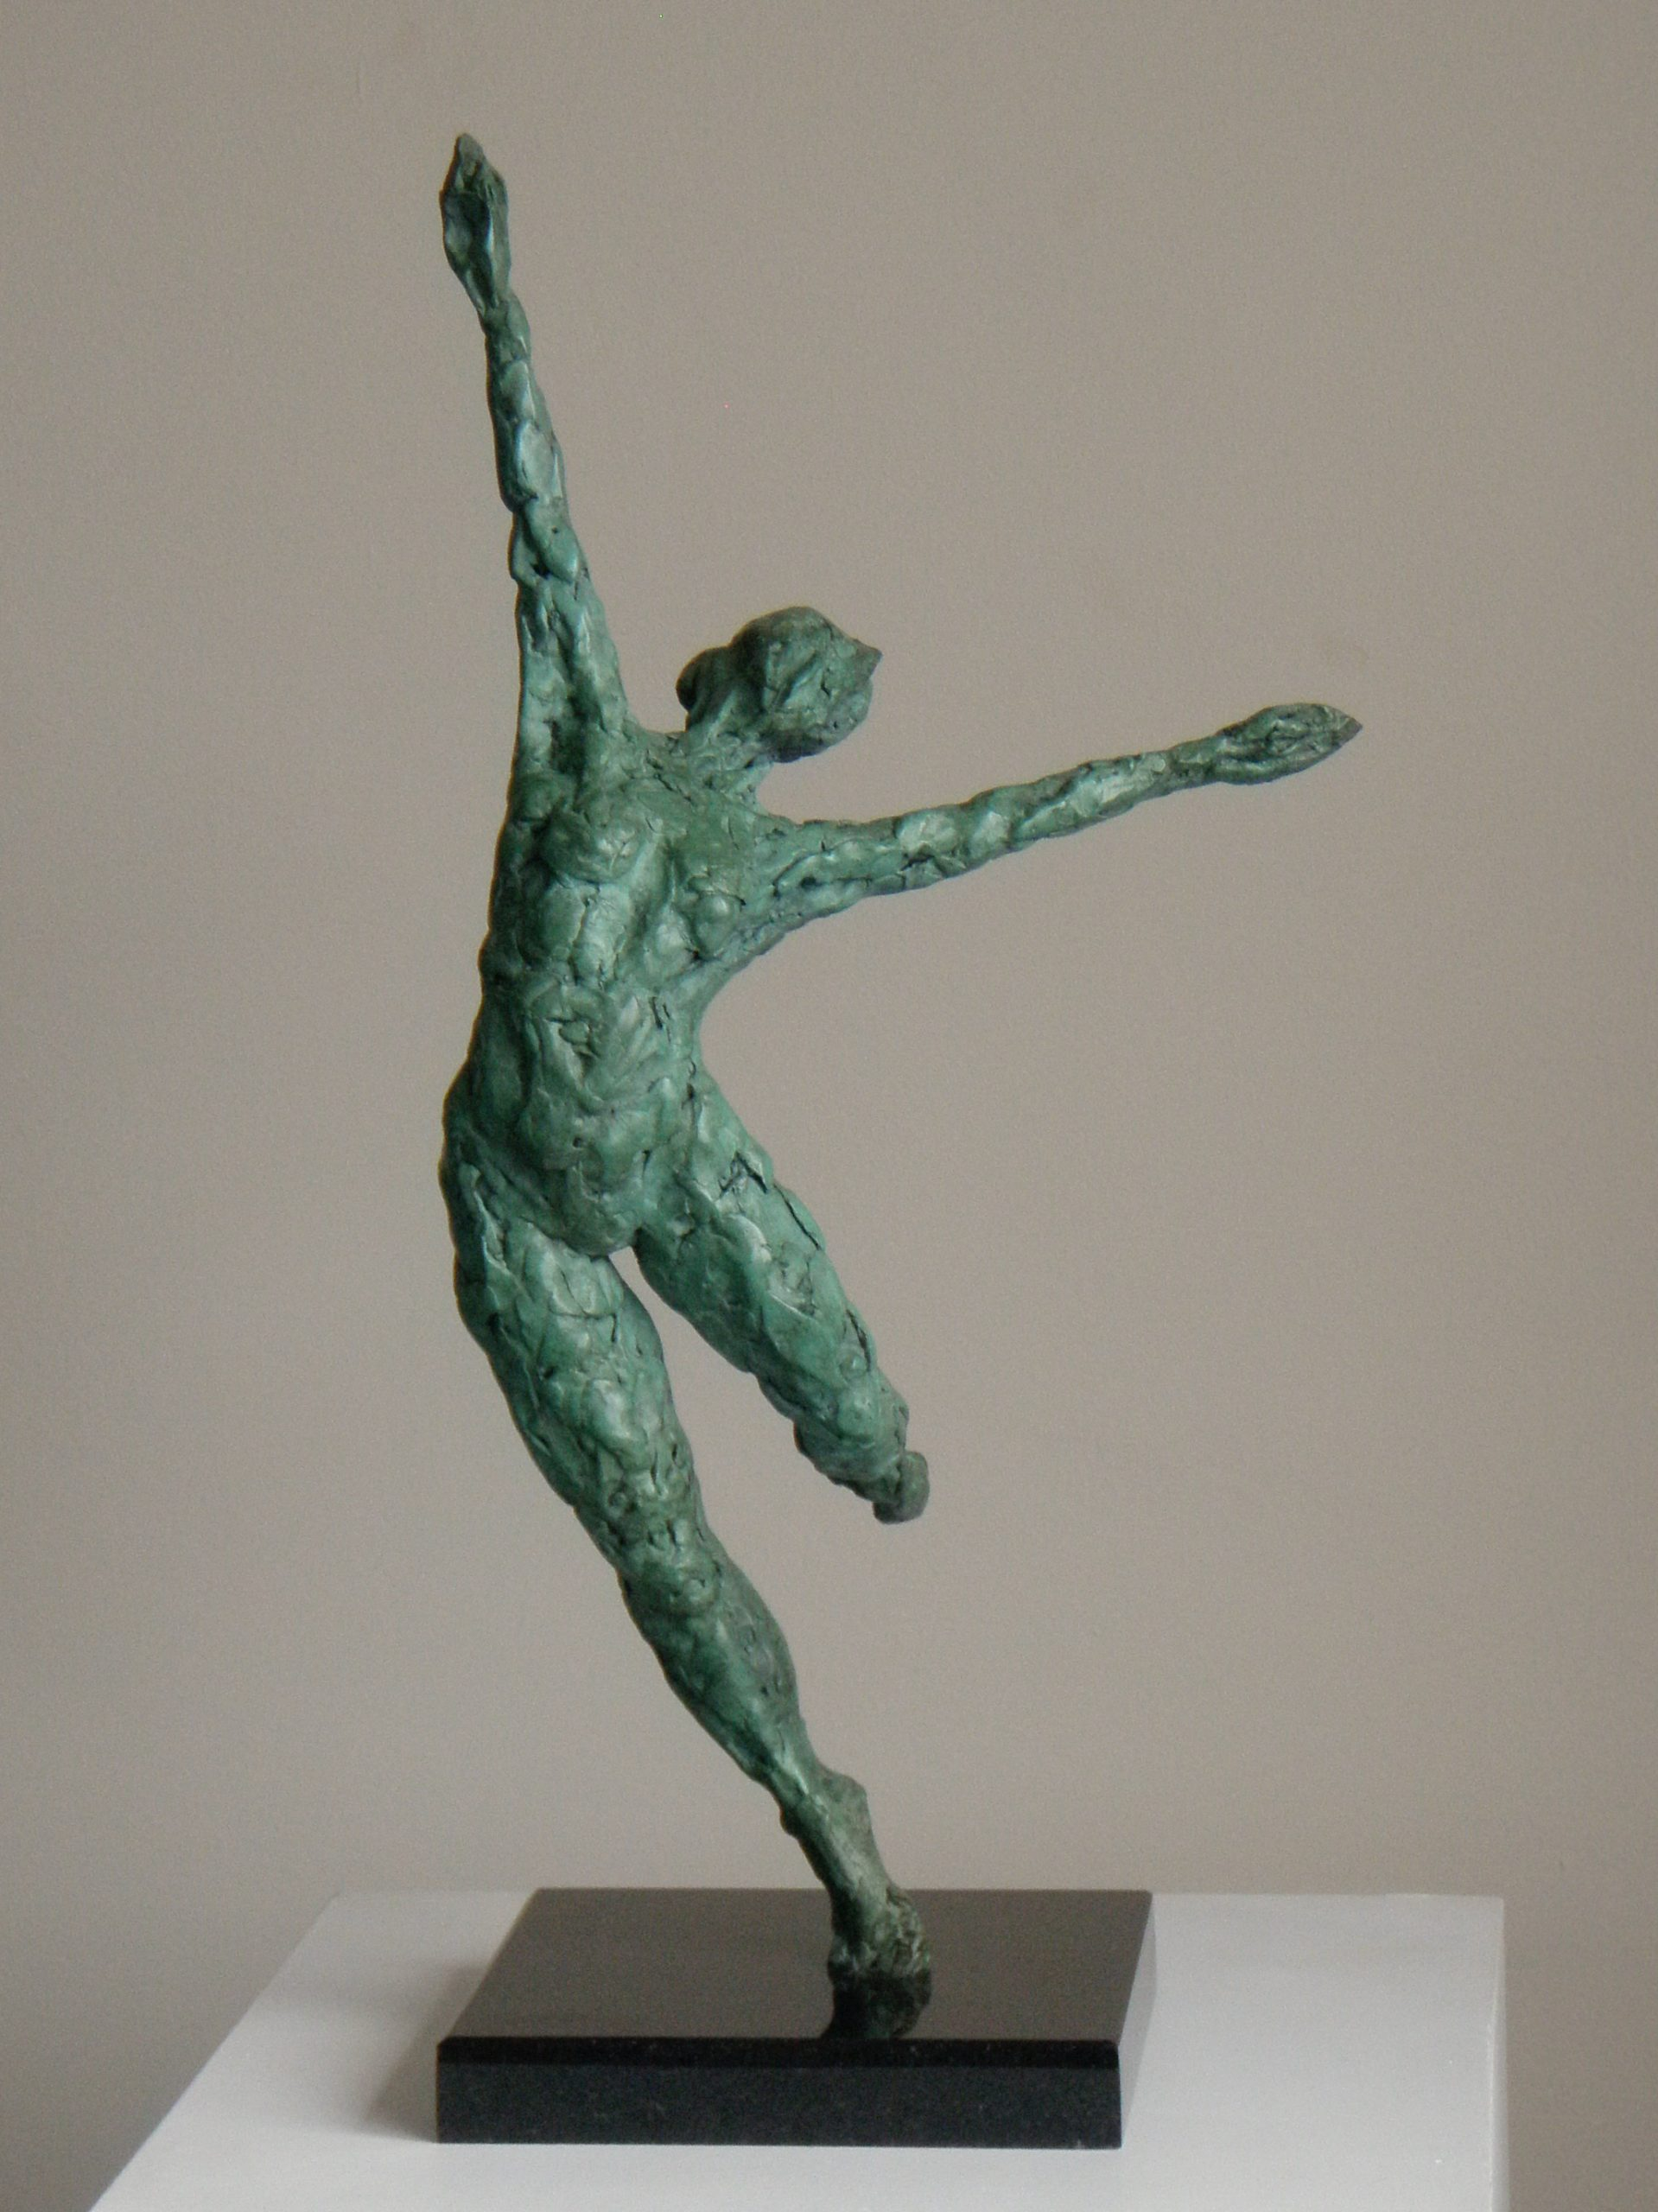 Photo of the verdigris bronze dancing figure called Dance V by Hazel Reeves